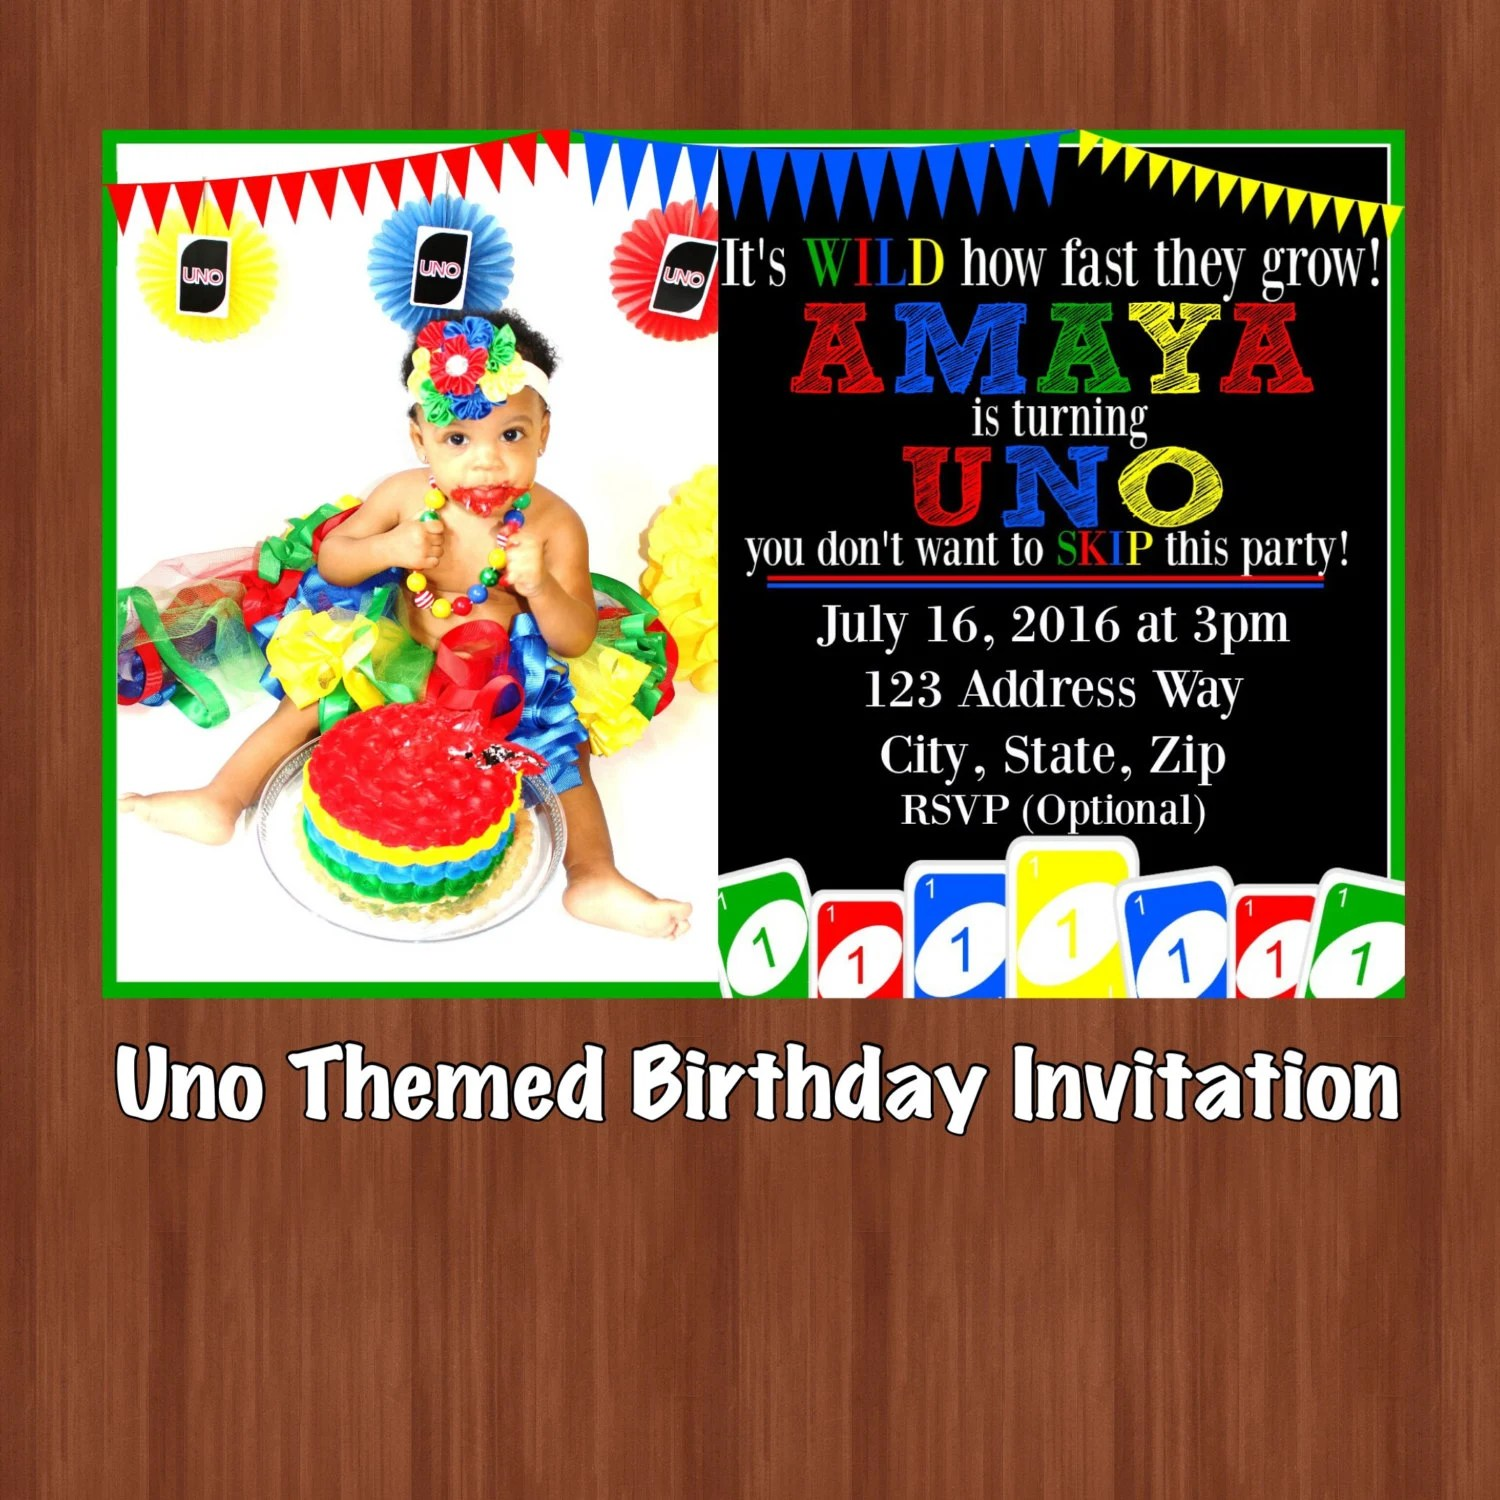 UNO Themed Birthday Party Invitation UNO One Year Old